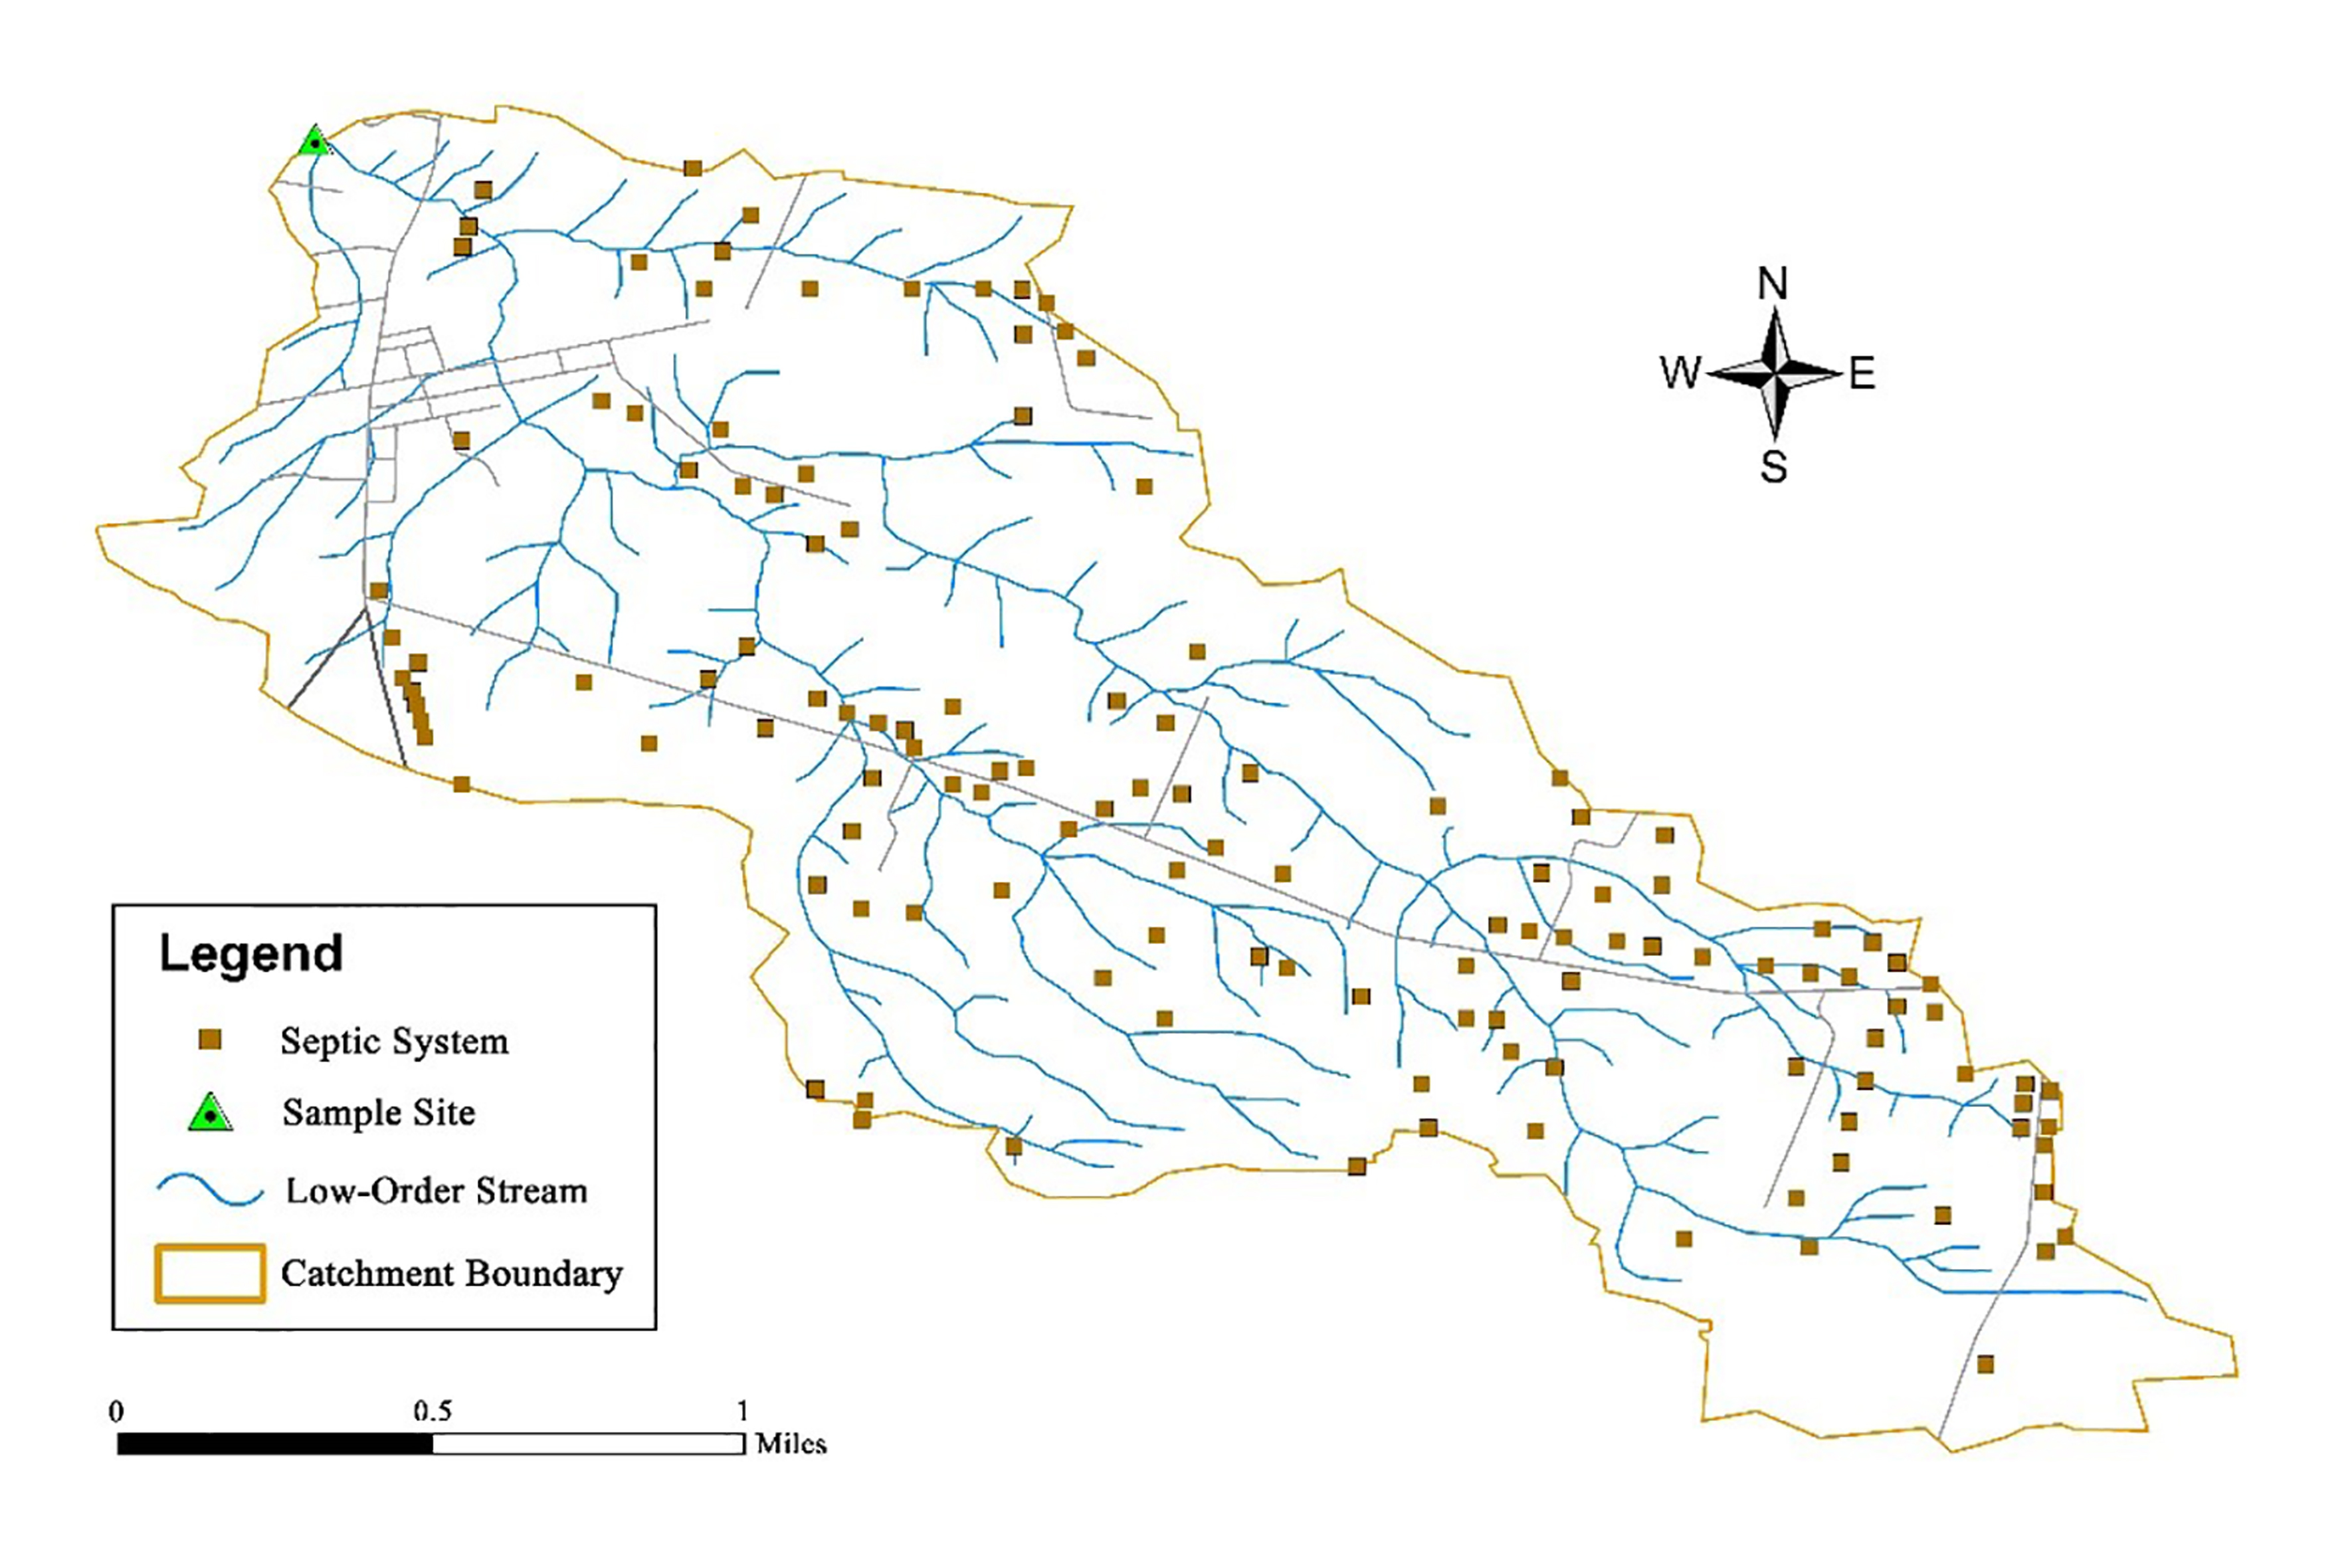 Pollution Source-Targeted Water Safety Management